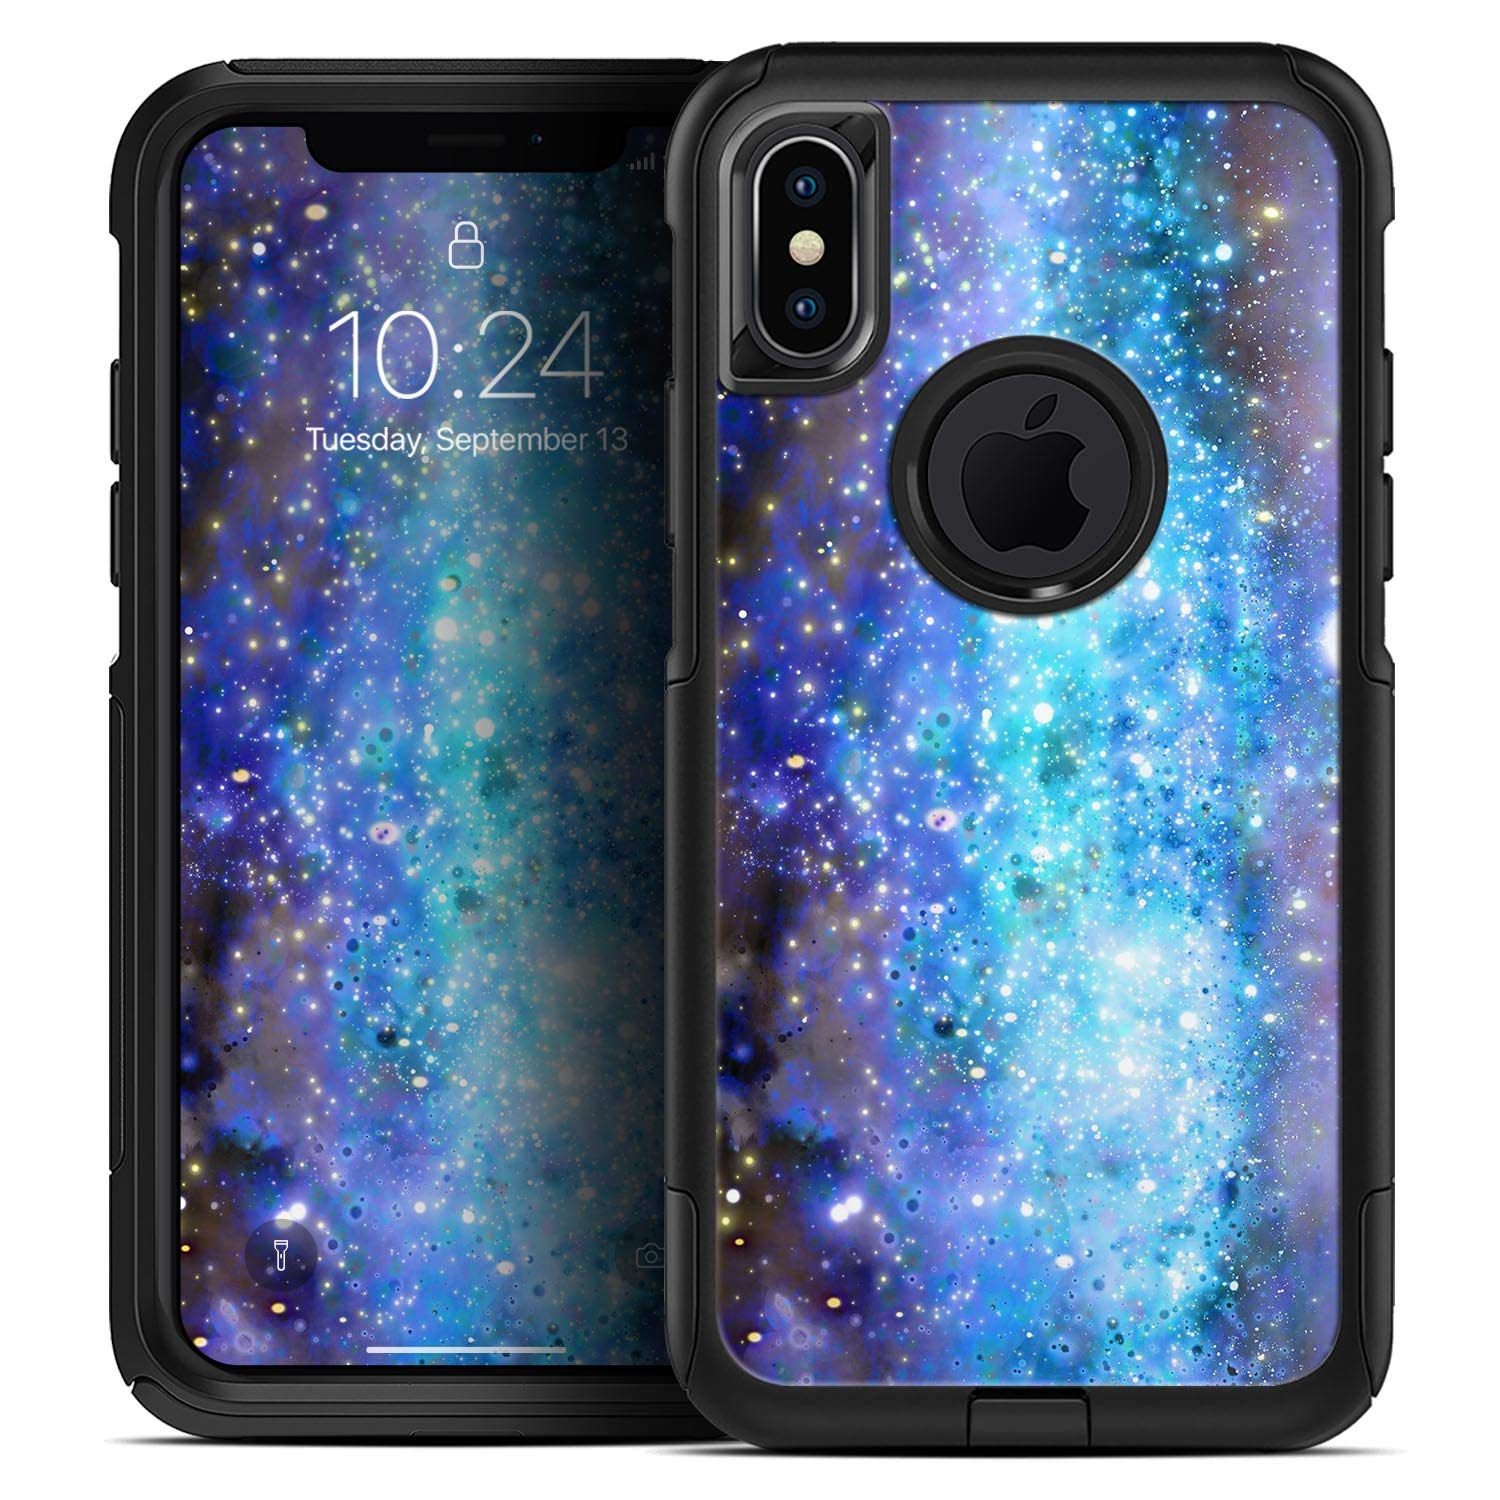 Glowing Space Texture - Skin Decal Kit for The iPhone Xs Max OtterBox Defender Case iiRov